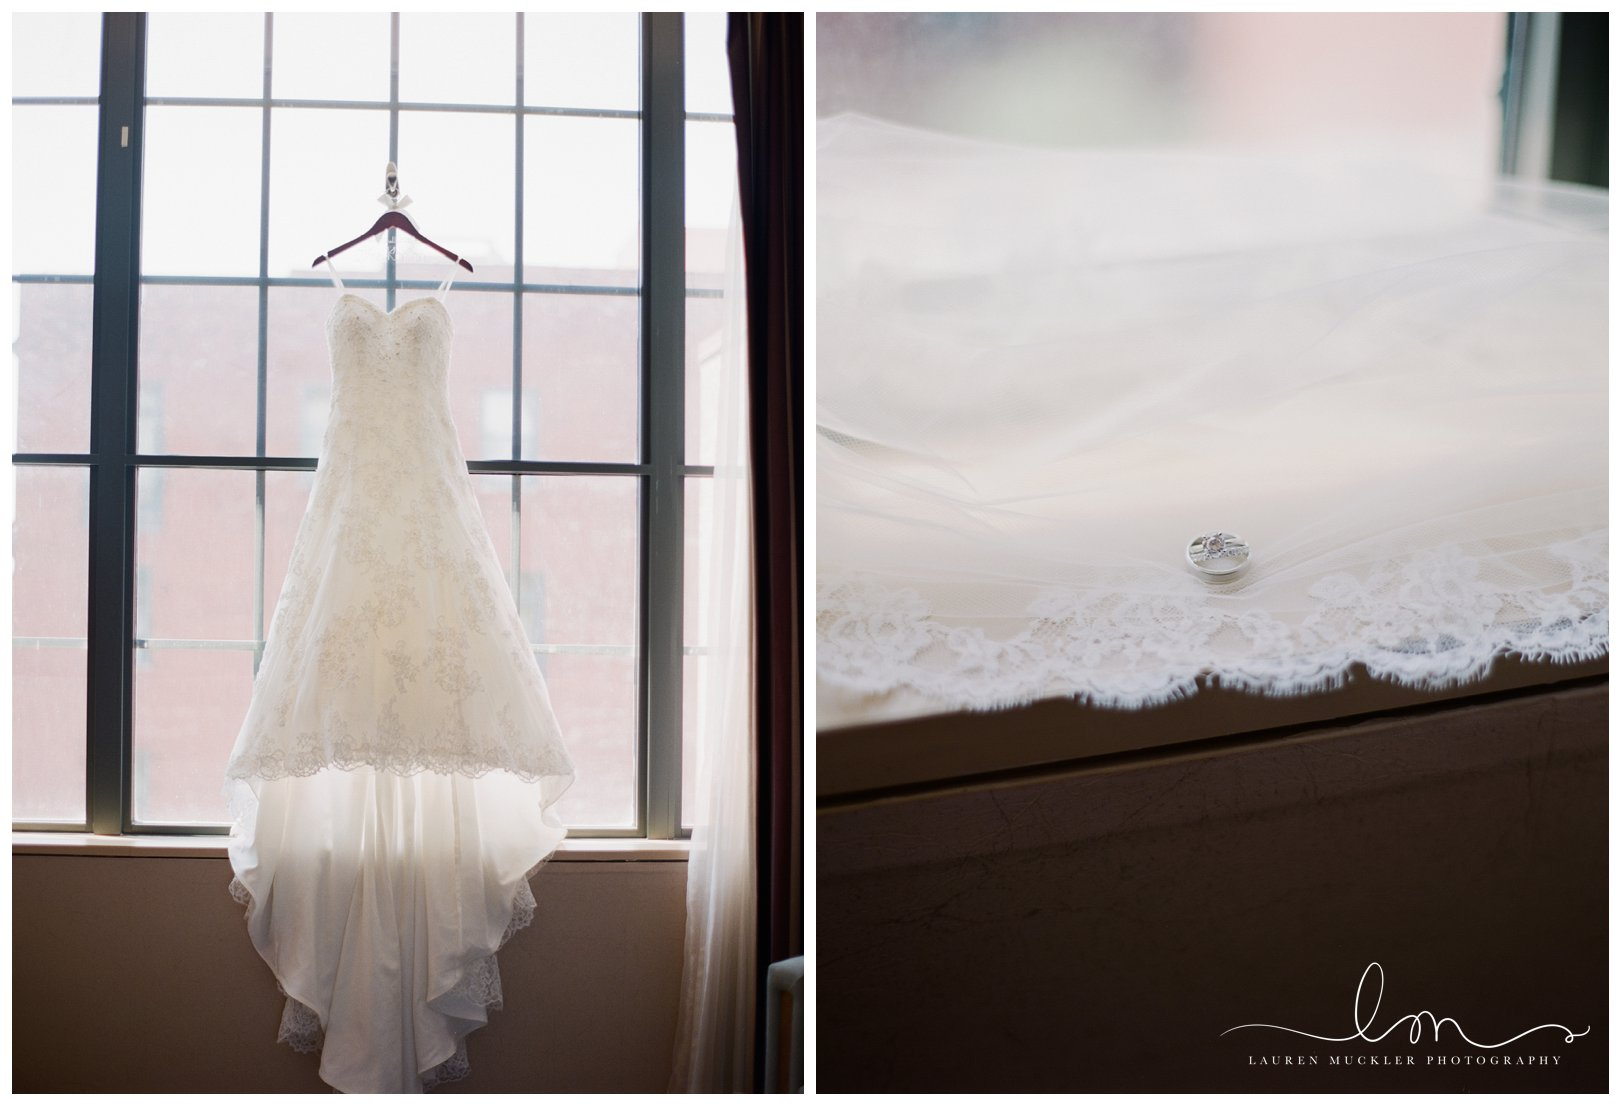 lauren muckler photography_fine art film wedding photography_st louis_photography_0422.jpg